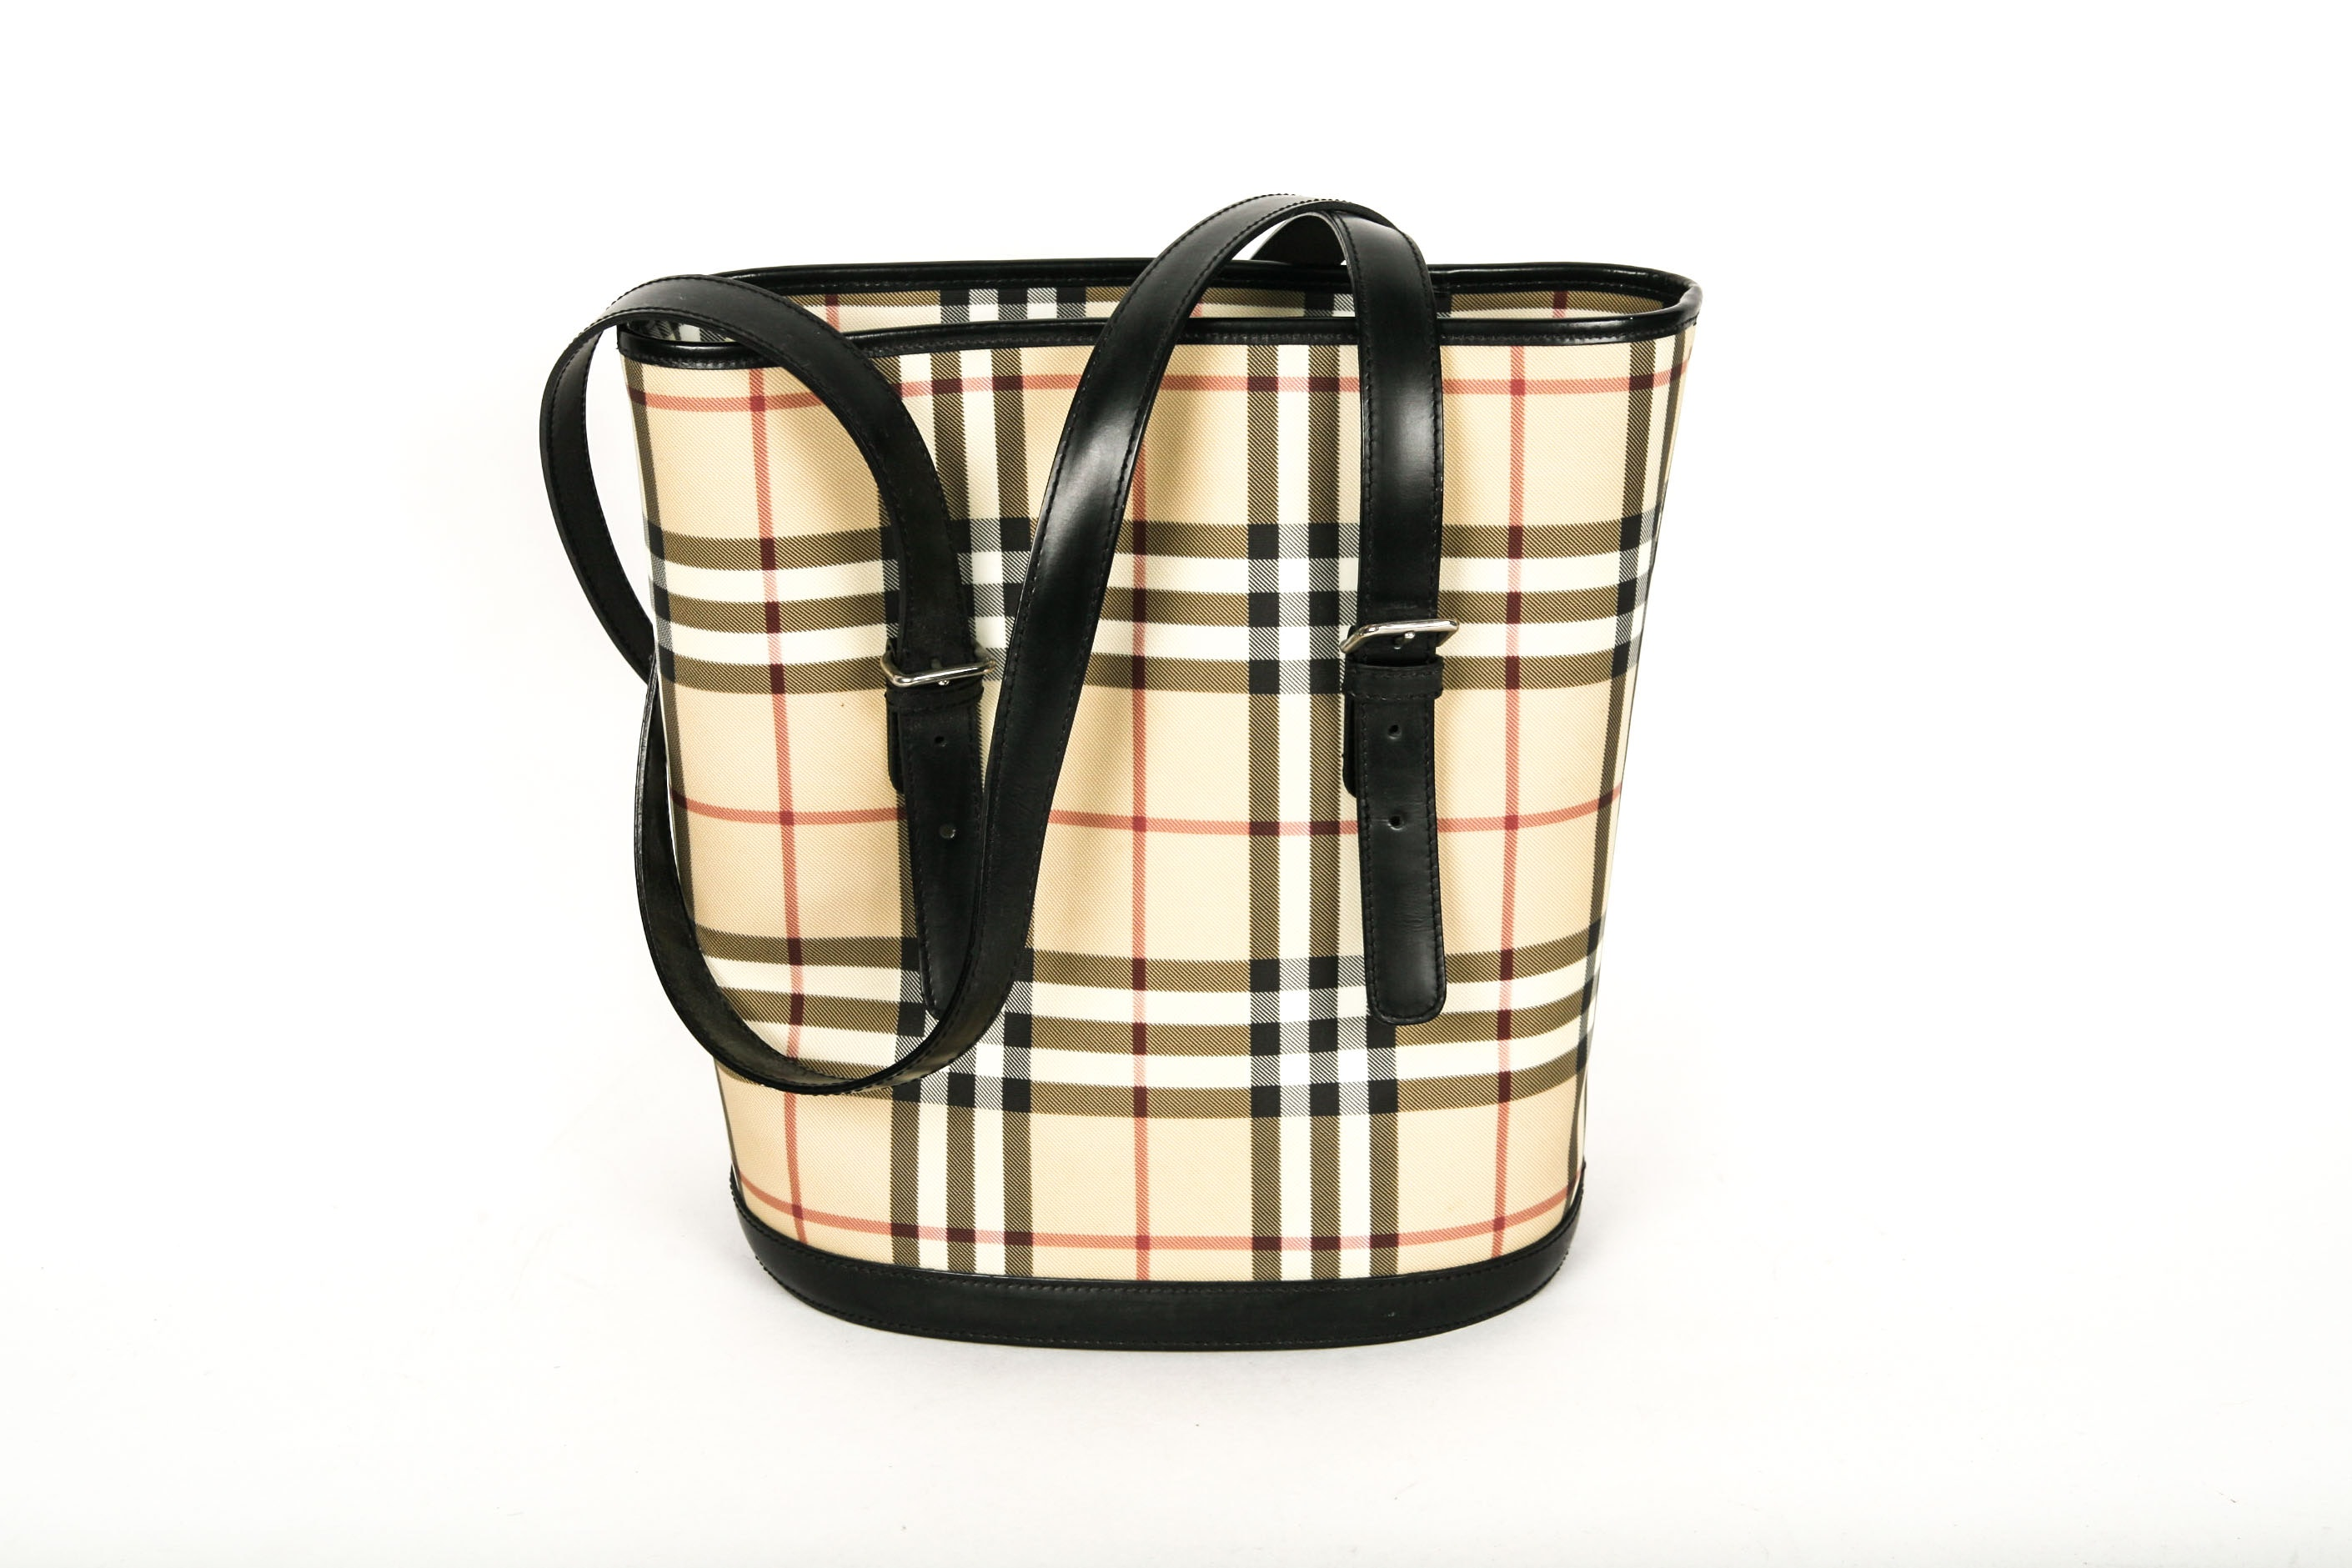 Burberry Bucket Purse